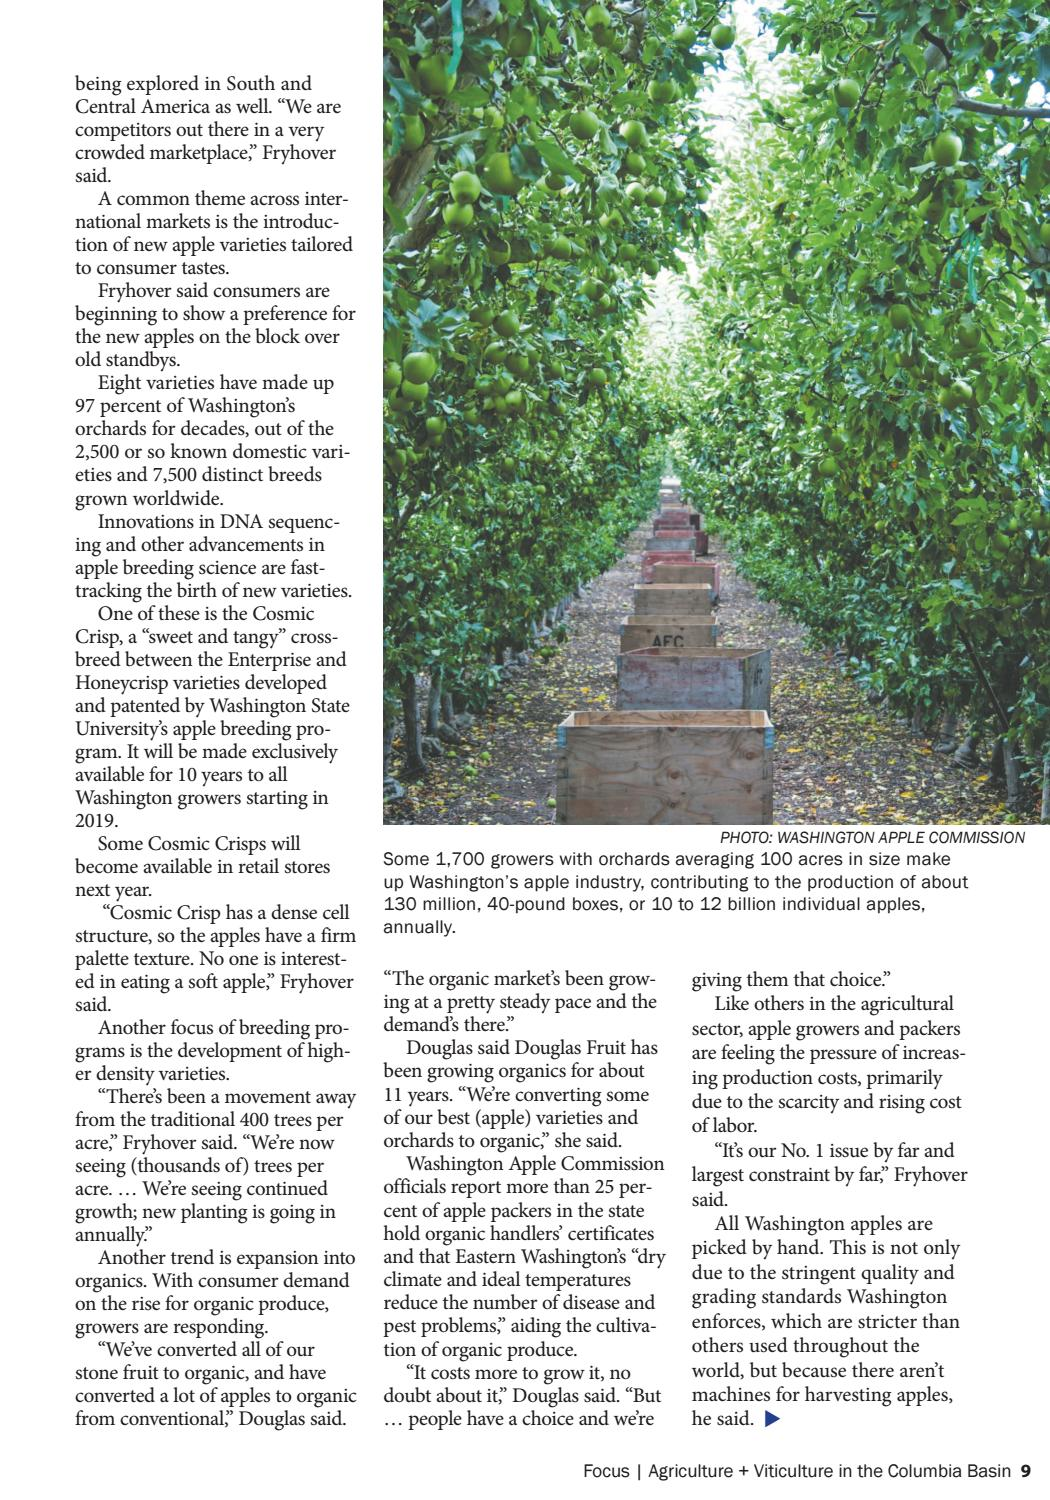 Focus: Agriculture + Viticulture 2018 by Tri-Cities Area